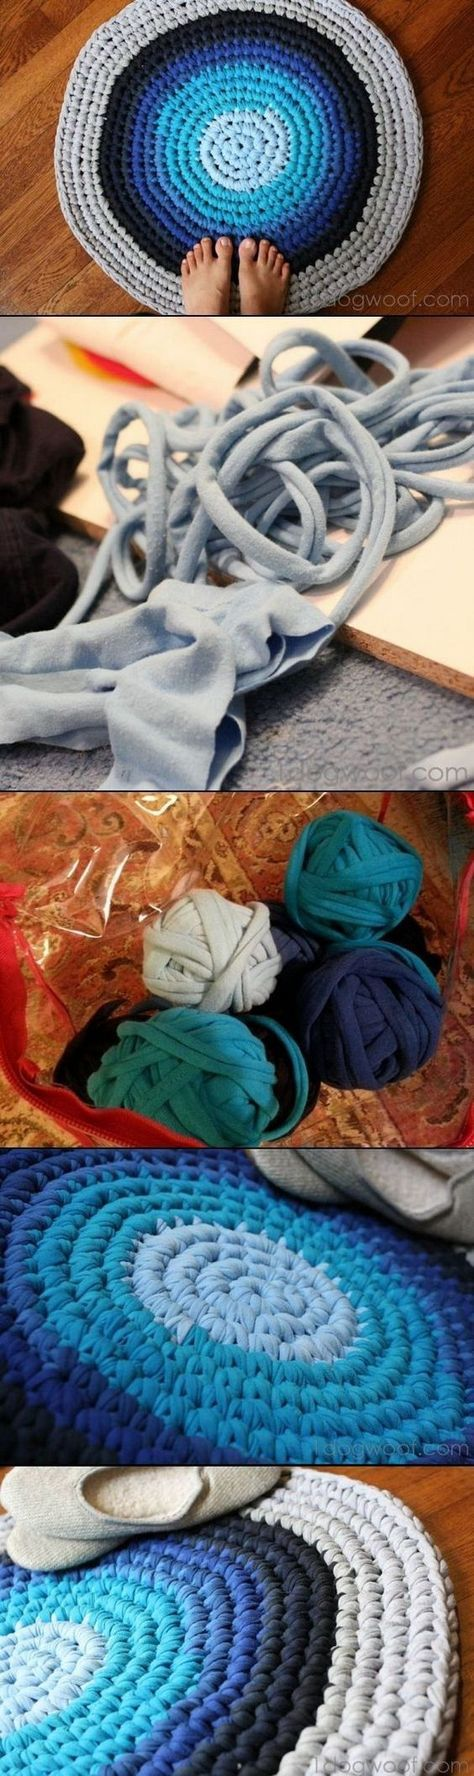 The 25 best braided rug tutorial ideas on pinterest diy crochet t shirt braided rug diy tutorial video instructions bankloansurffo Choice Image